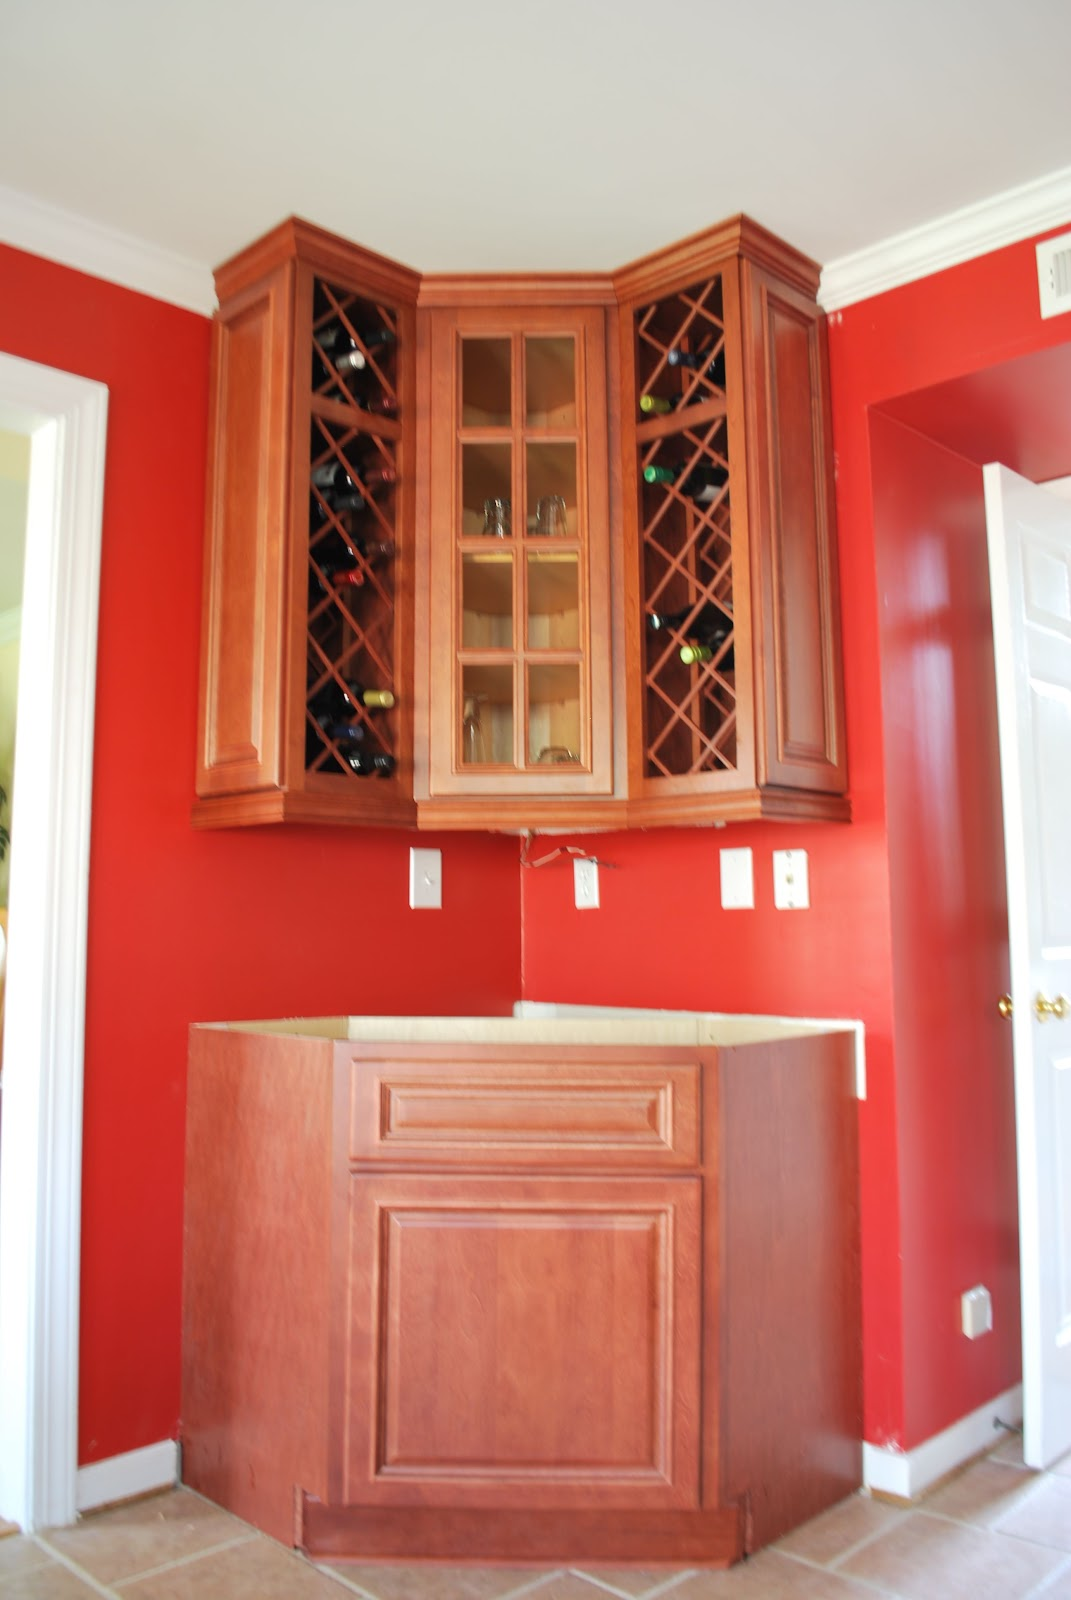 Envy Kitchens 804-551-6840: Custom Corner Wine Rack